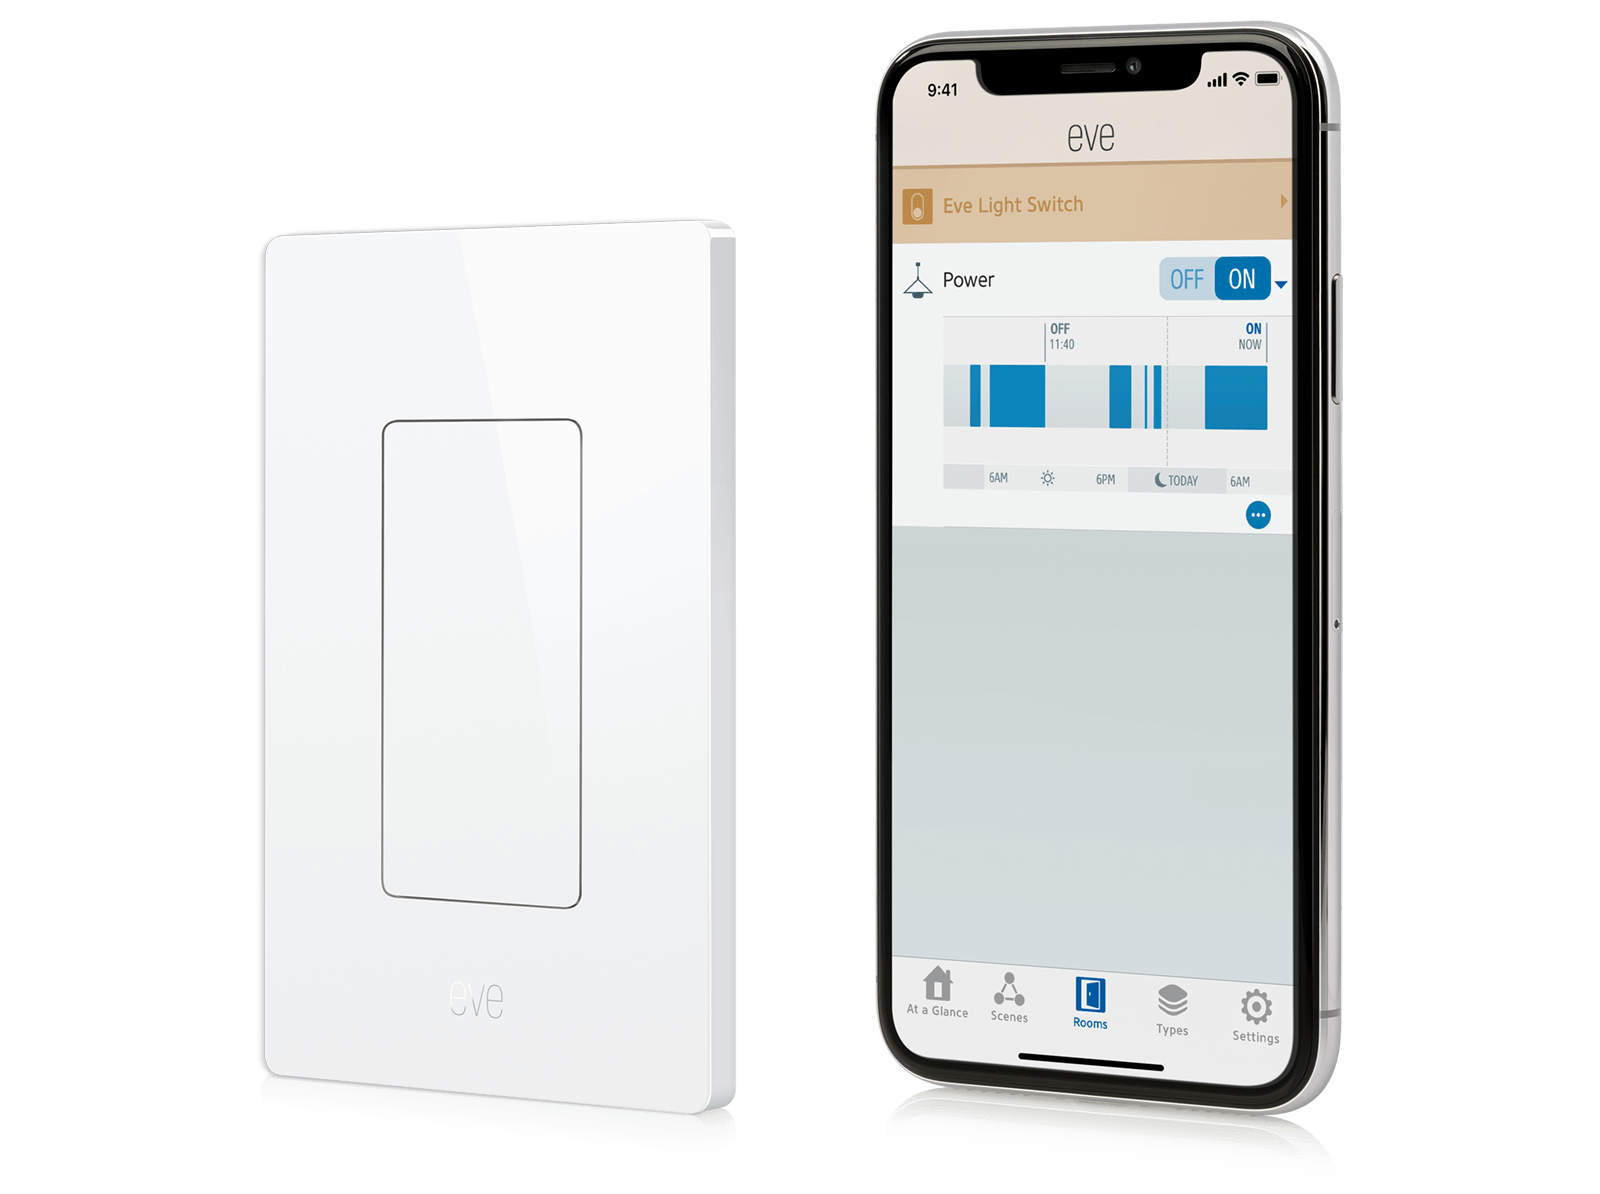 Eve Light Switch Browse Lighting Diagrams That Use A 3 Way Easily Engage Accessories Using The Home App On Your Iphone Ipad Or Ipod Touch And To See Concise Records Gain Insights Enjoy Full Control Of